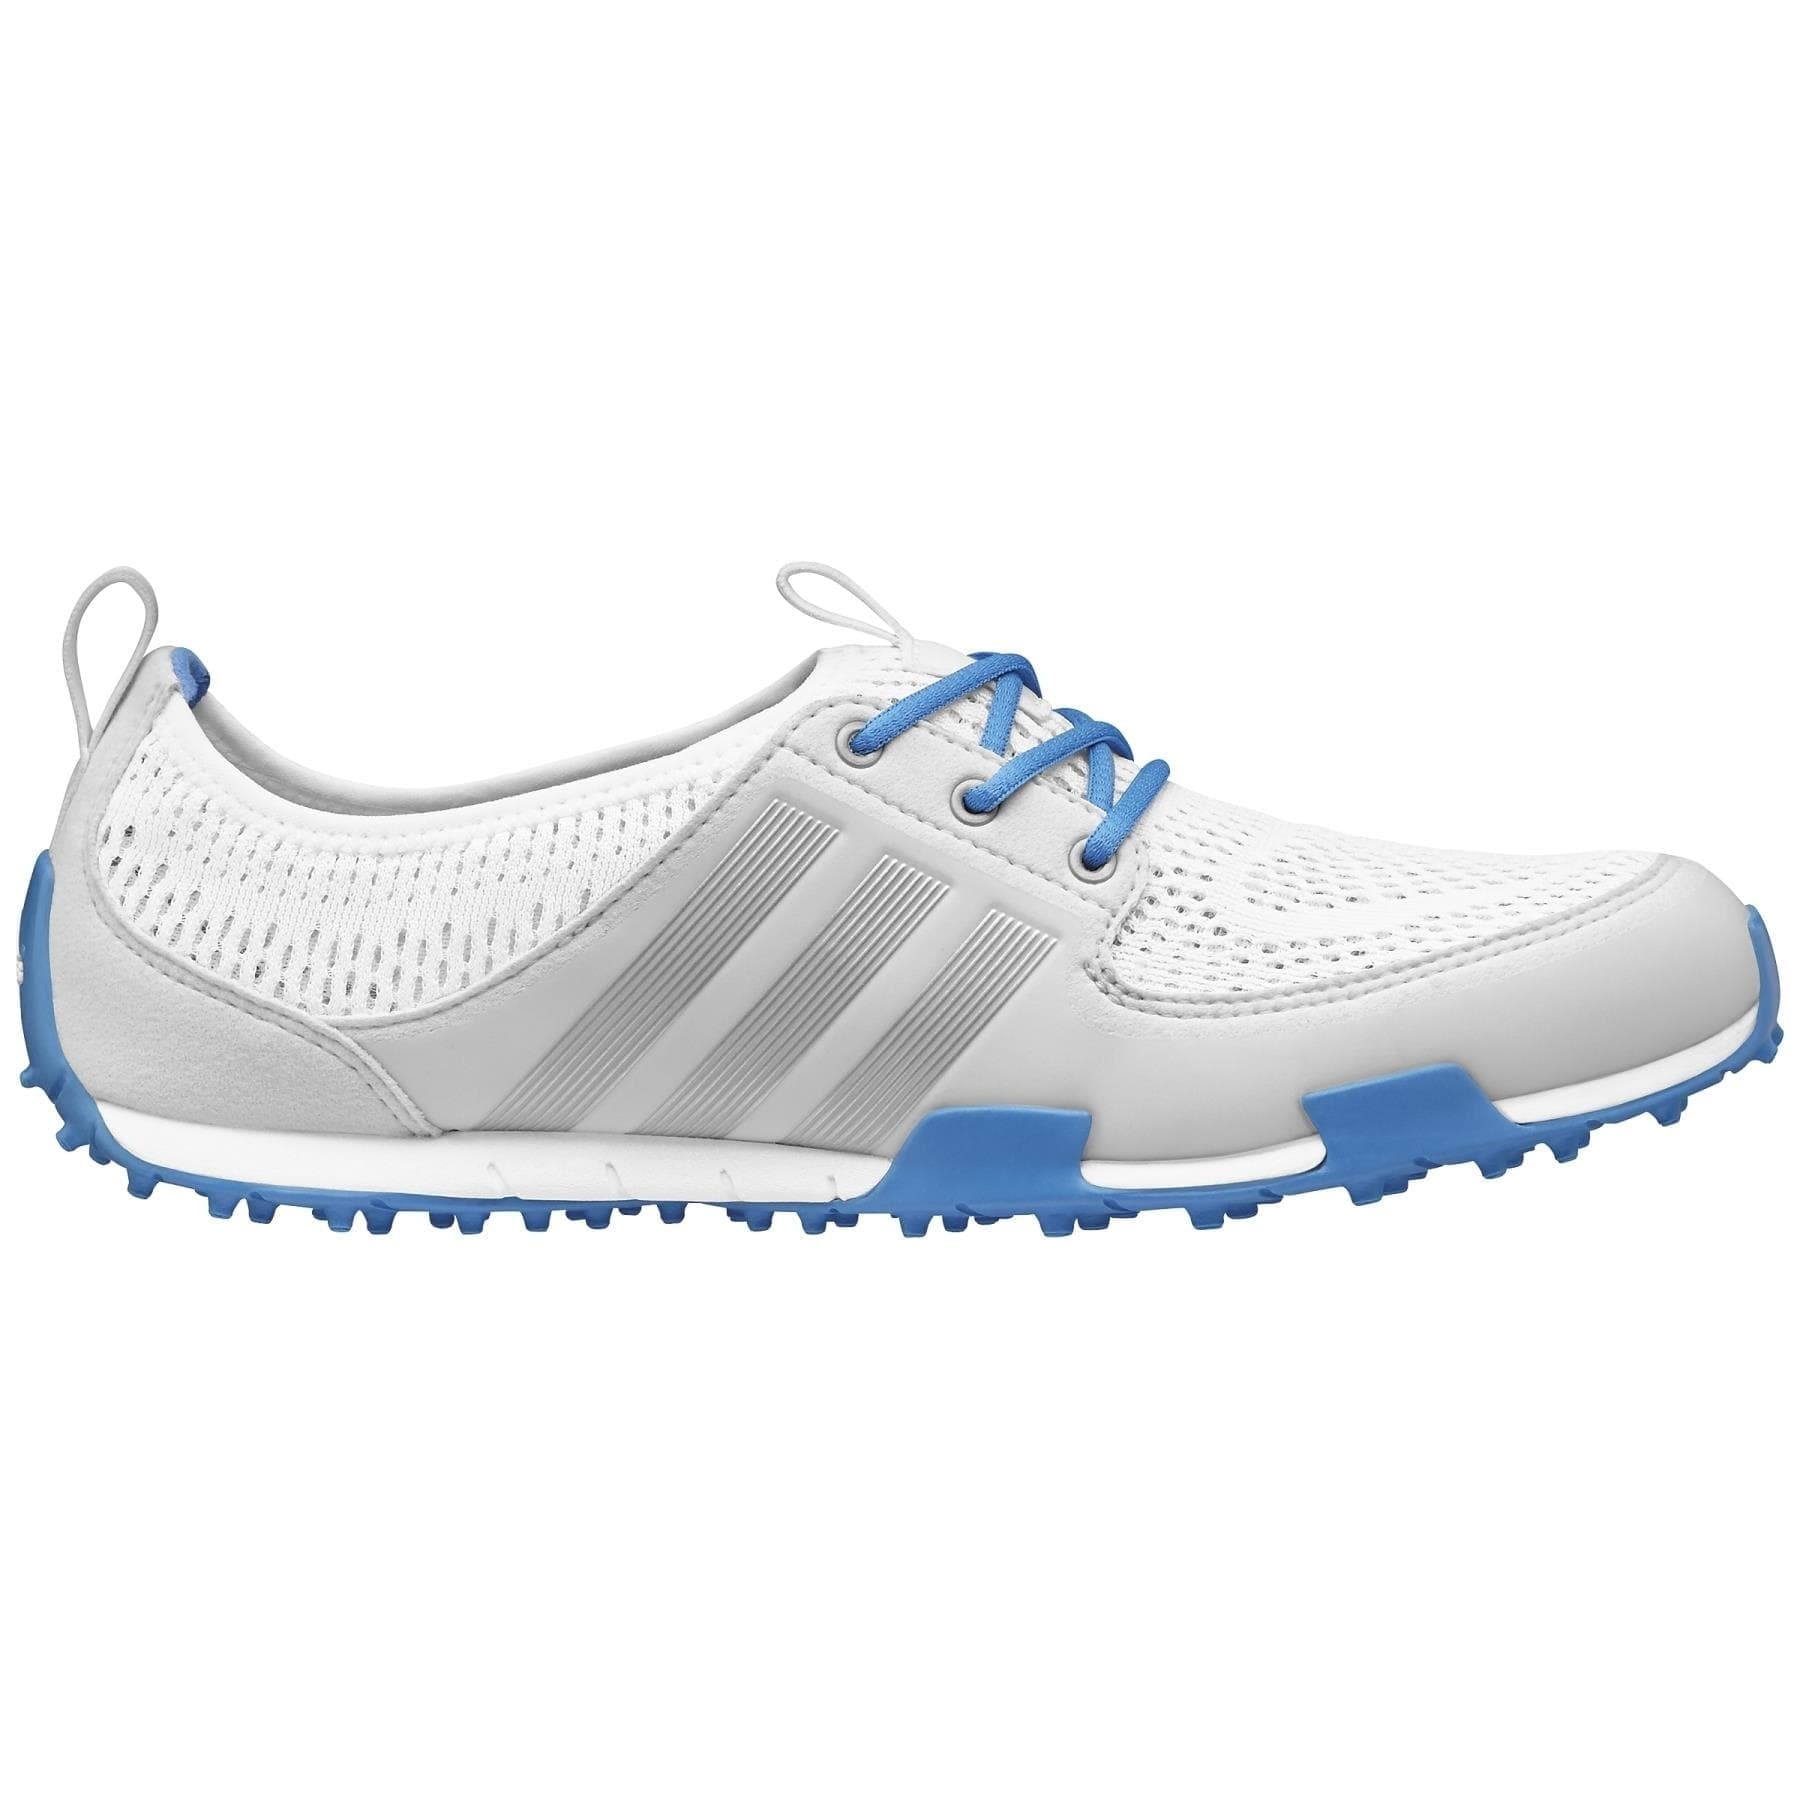 cheap for discount e5838 c9bd0 Buy Adidas Women s Golf Shoes Online at Overstock   Our Best Golf Shoes  Deals